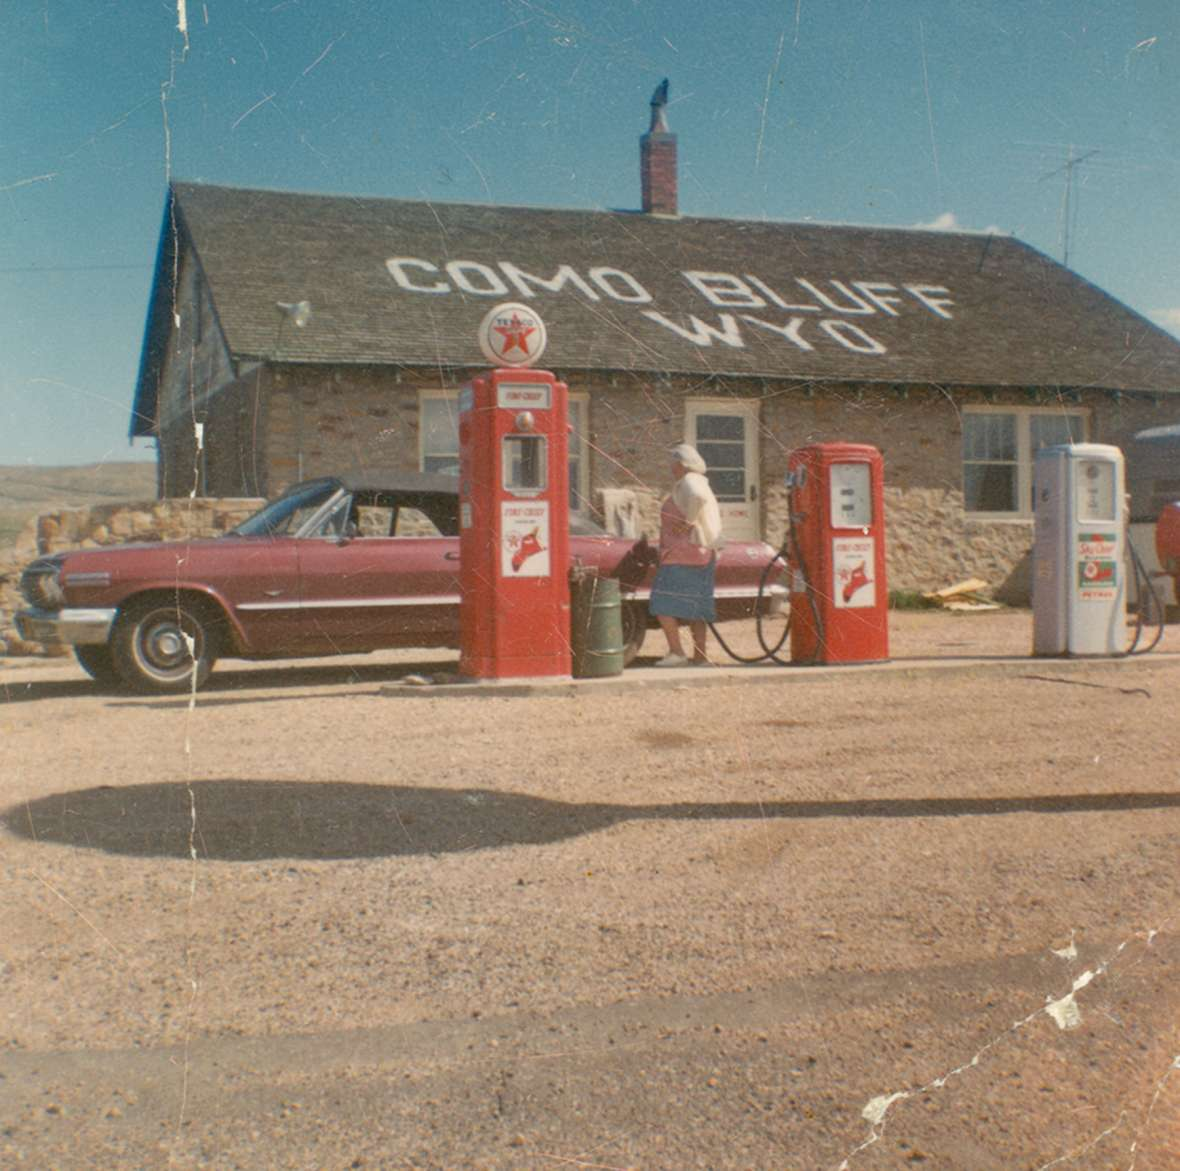 At Como Bluff east of Medicine Bow, the Boylan family in the 1930s built the famed 'fossil cabin' out of pieces of dinosaur bone and other fossils, together with this more conventional house. The roadside attraction and Texaco station continued operating into the 1970s—but after 1970, when Interstate 80 was completed, business would have contracted severely. Wyoming State Archives.